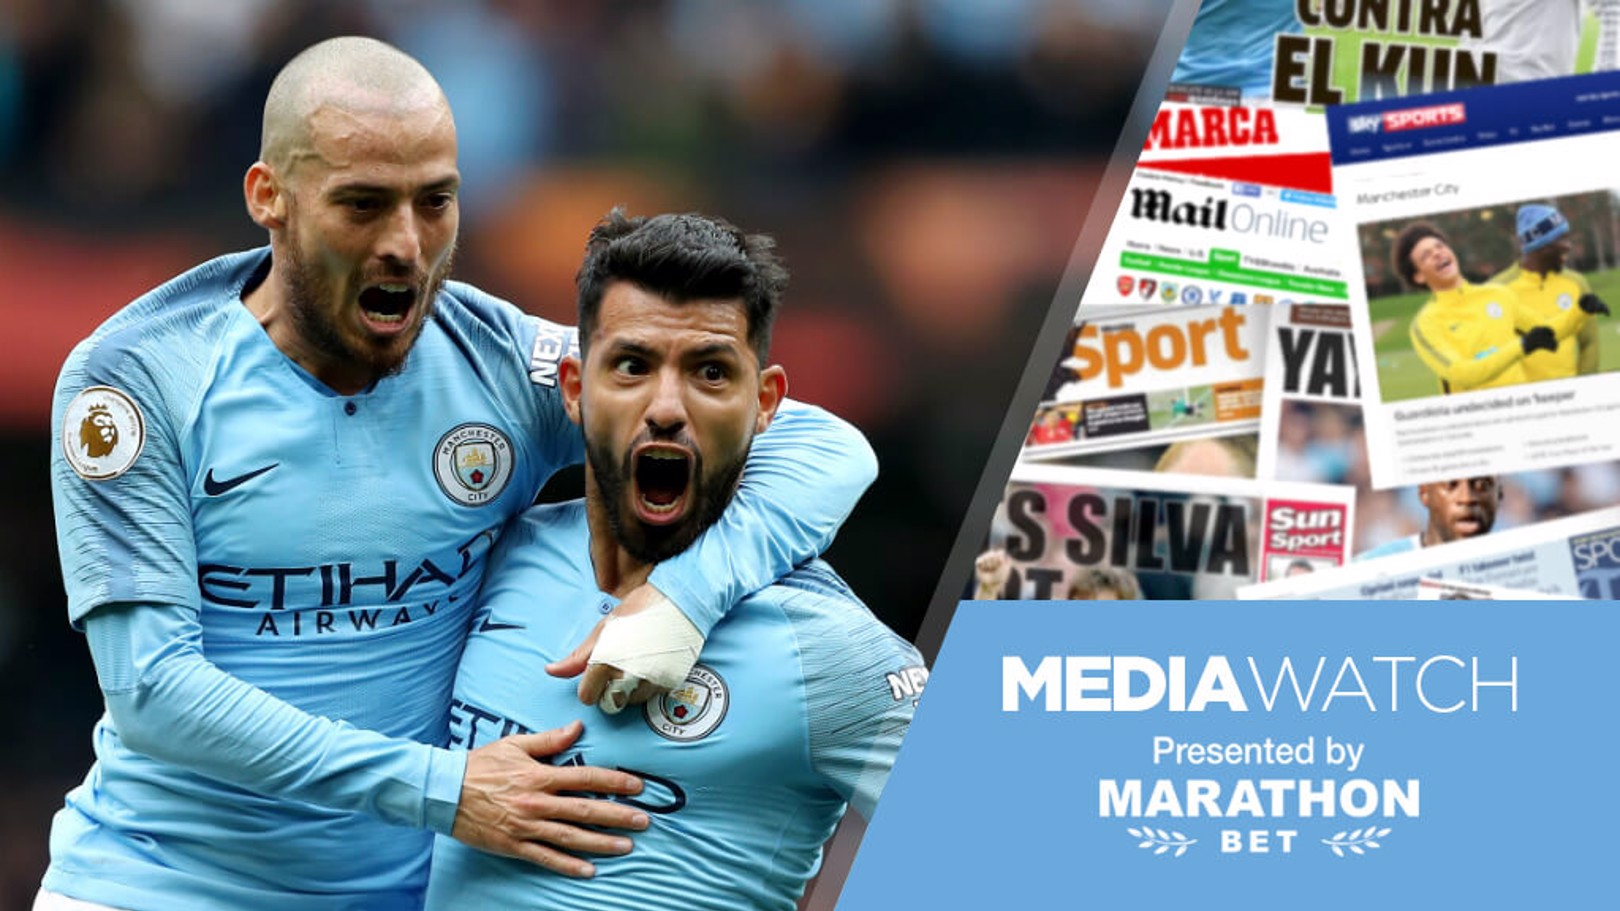 SILVA AND GOLD: David Silva and Sergio Aguero have earned high praise